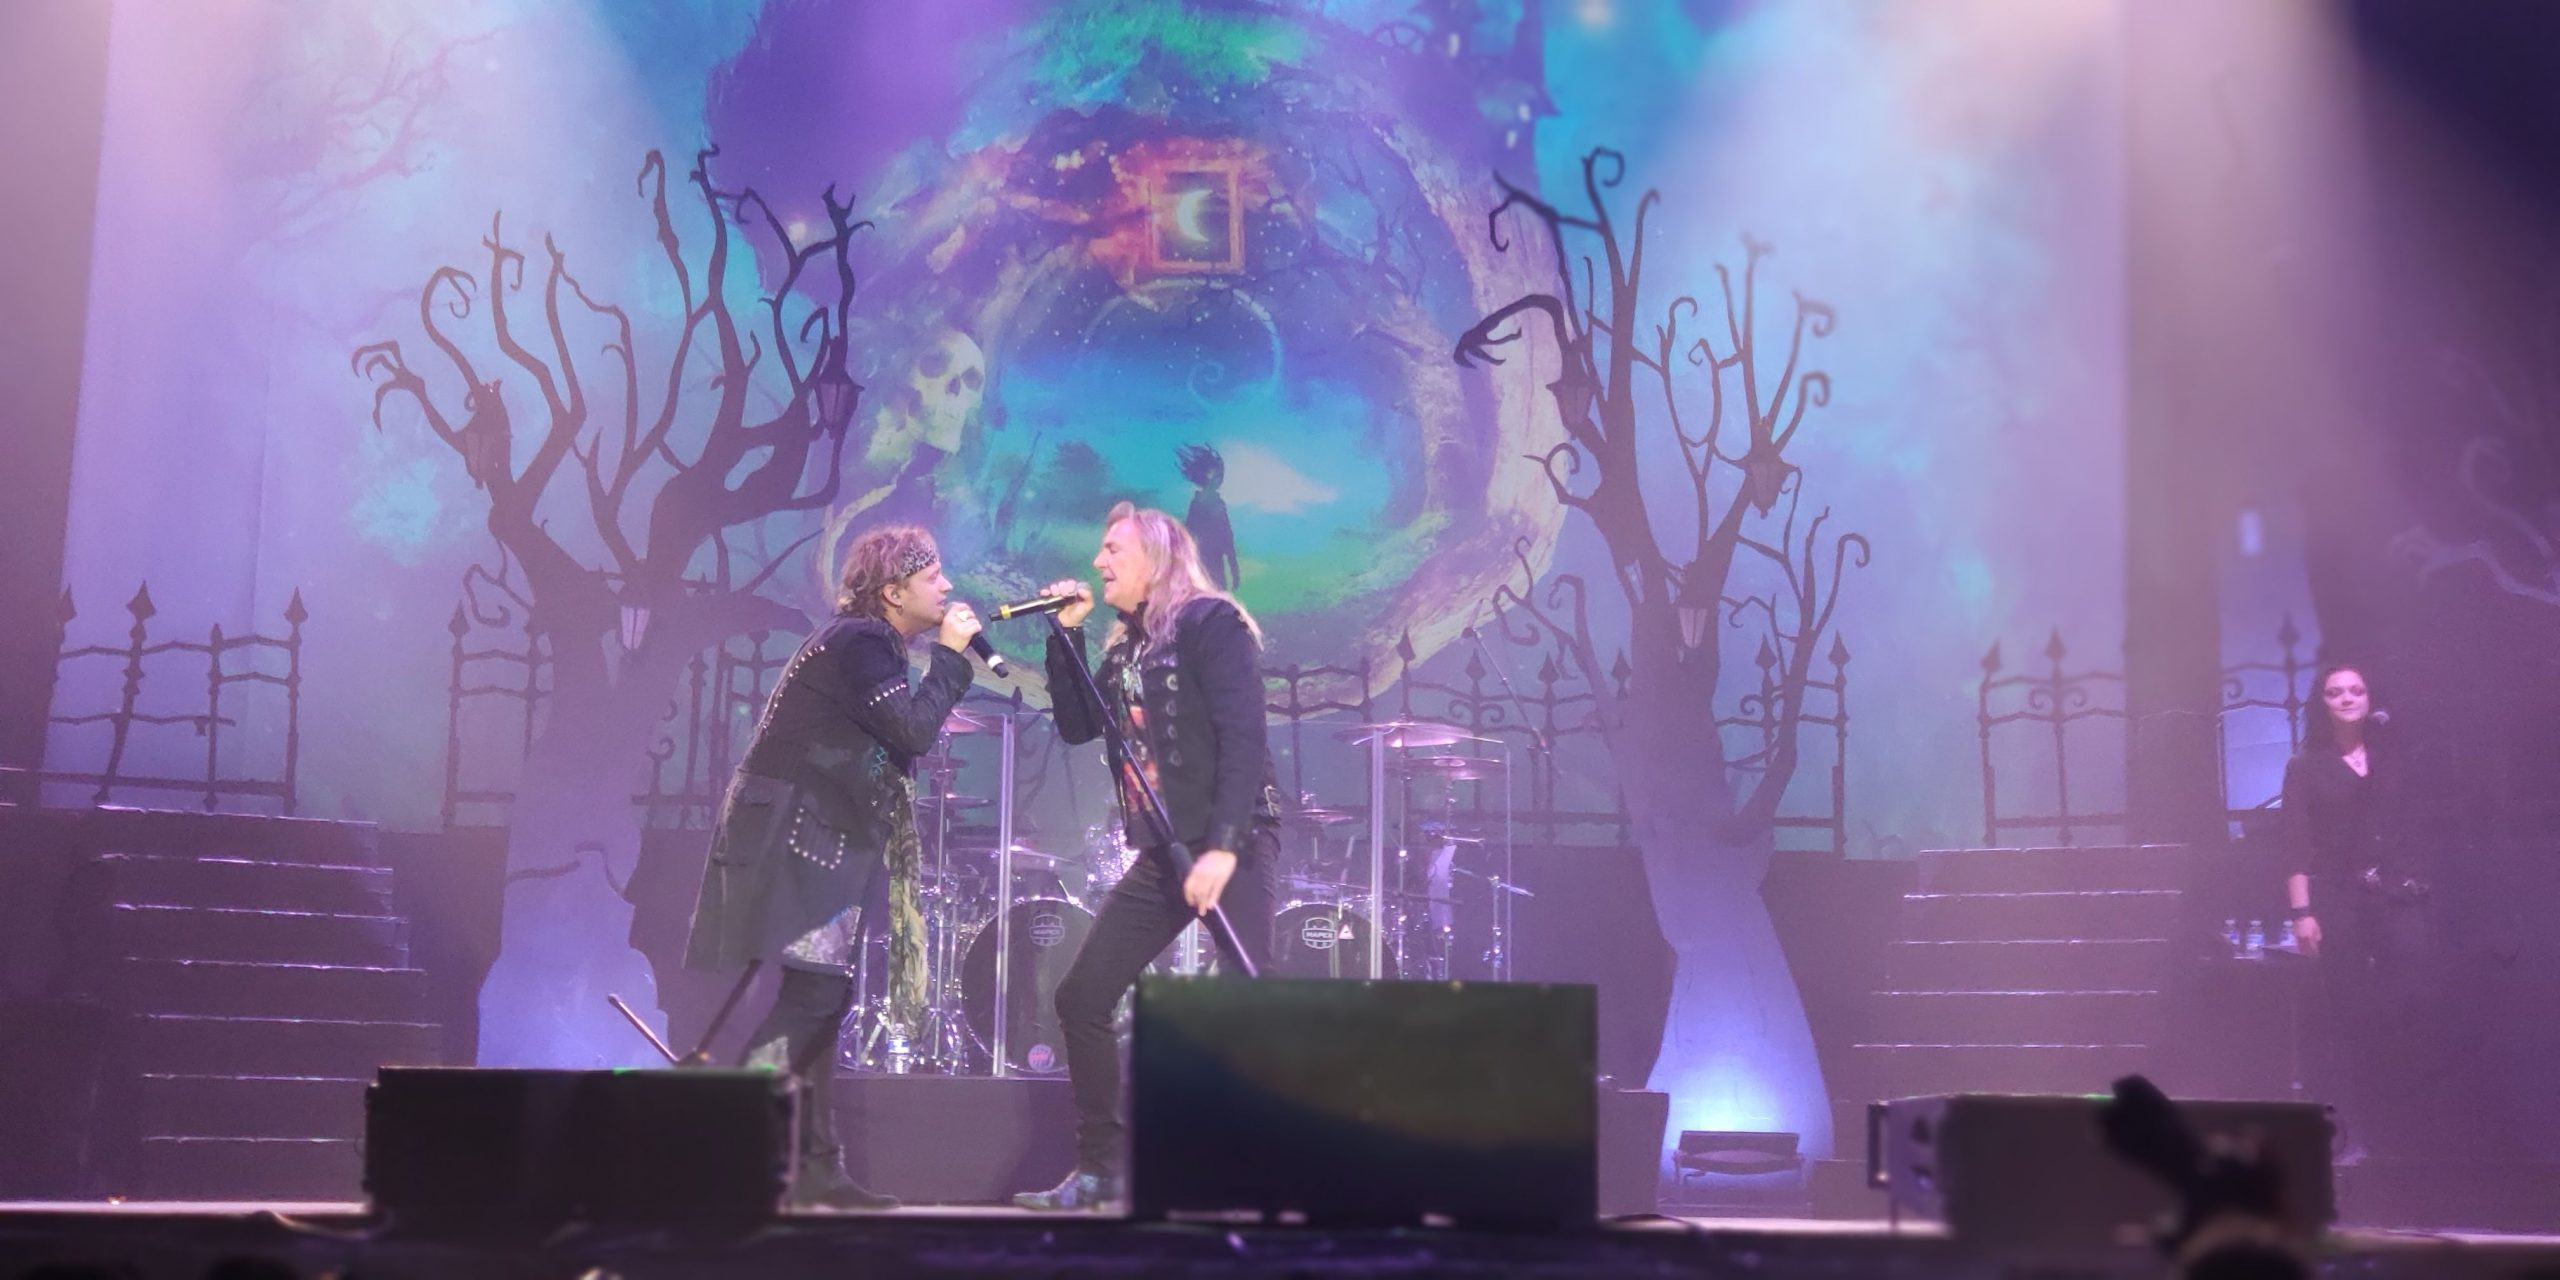 cronica-avantasia-madrid-2019 3